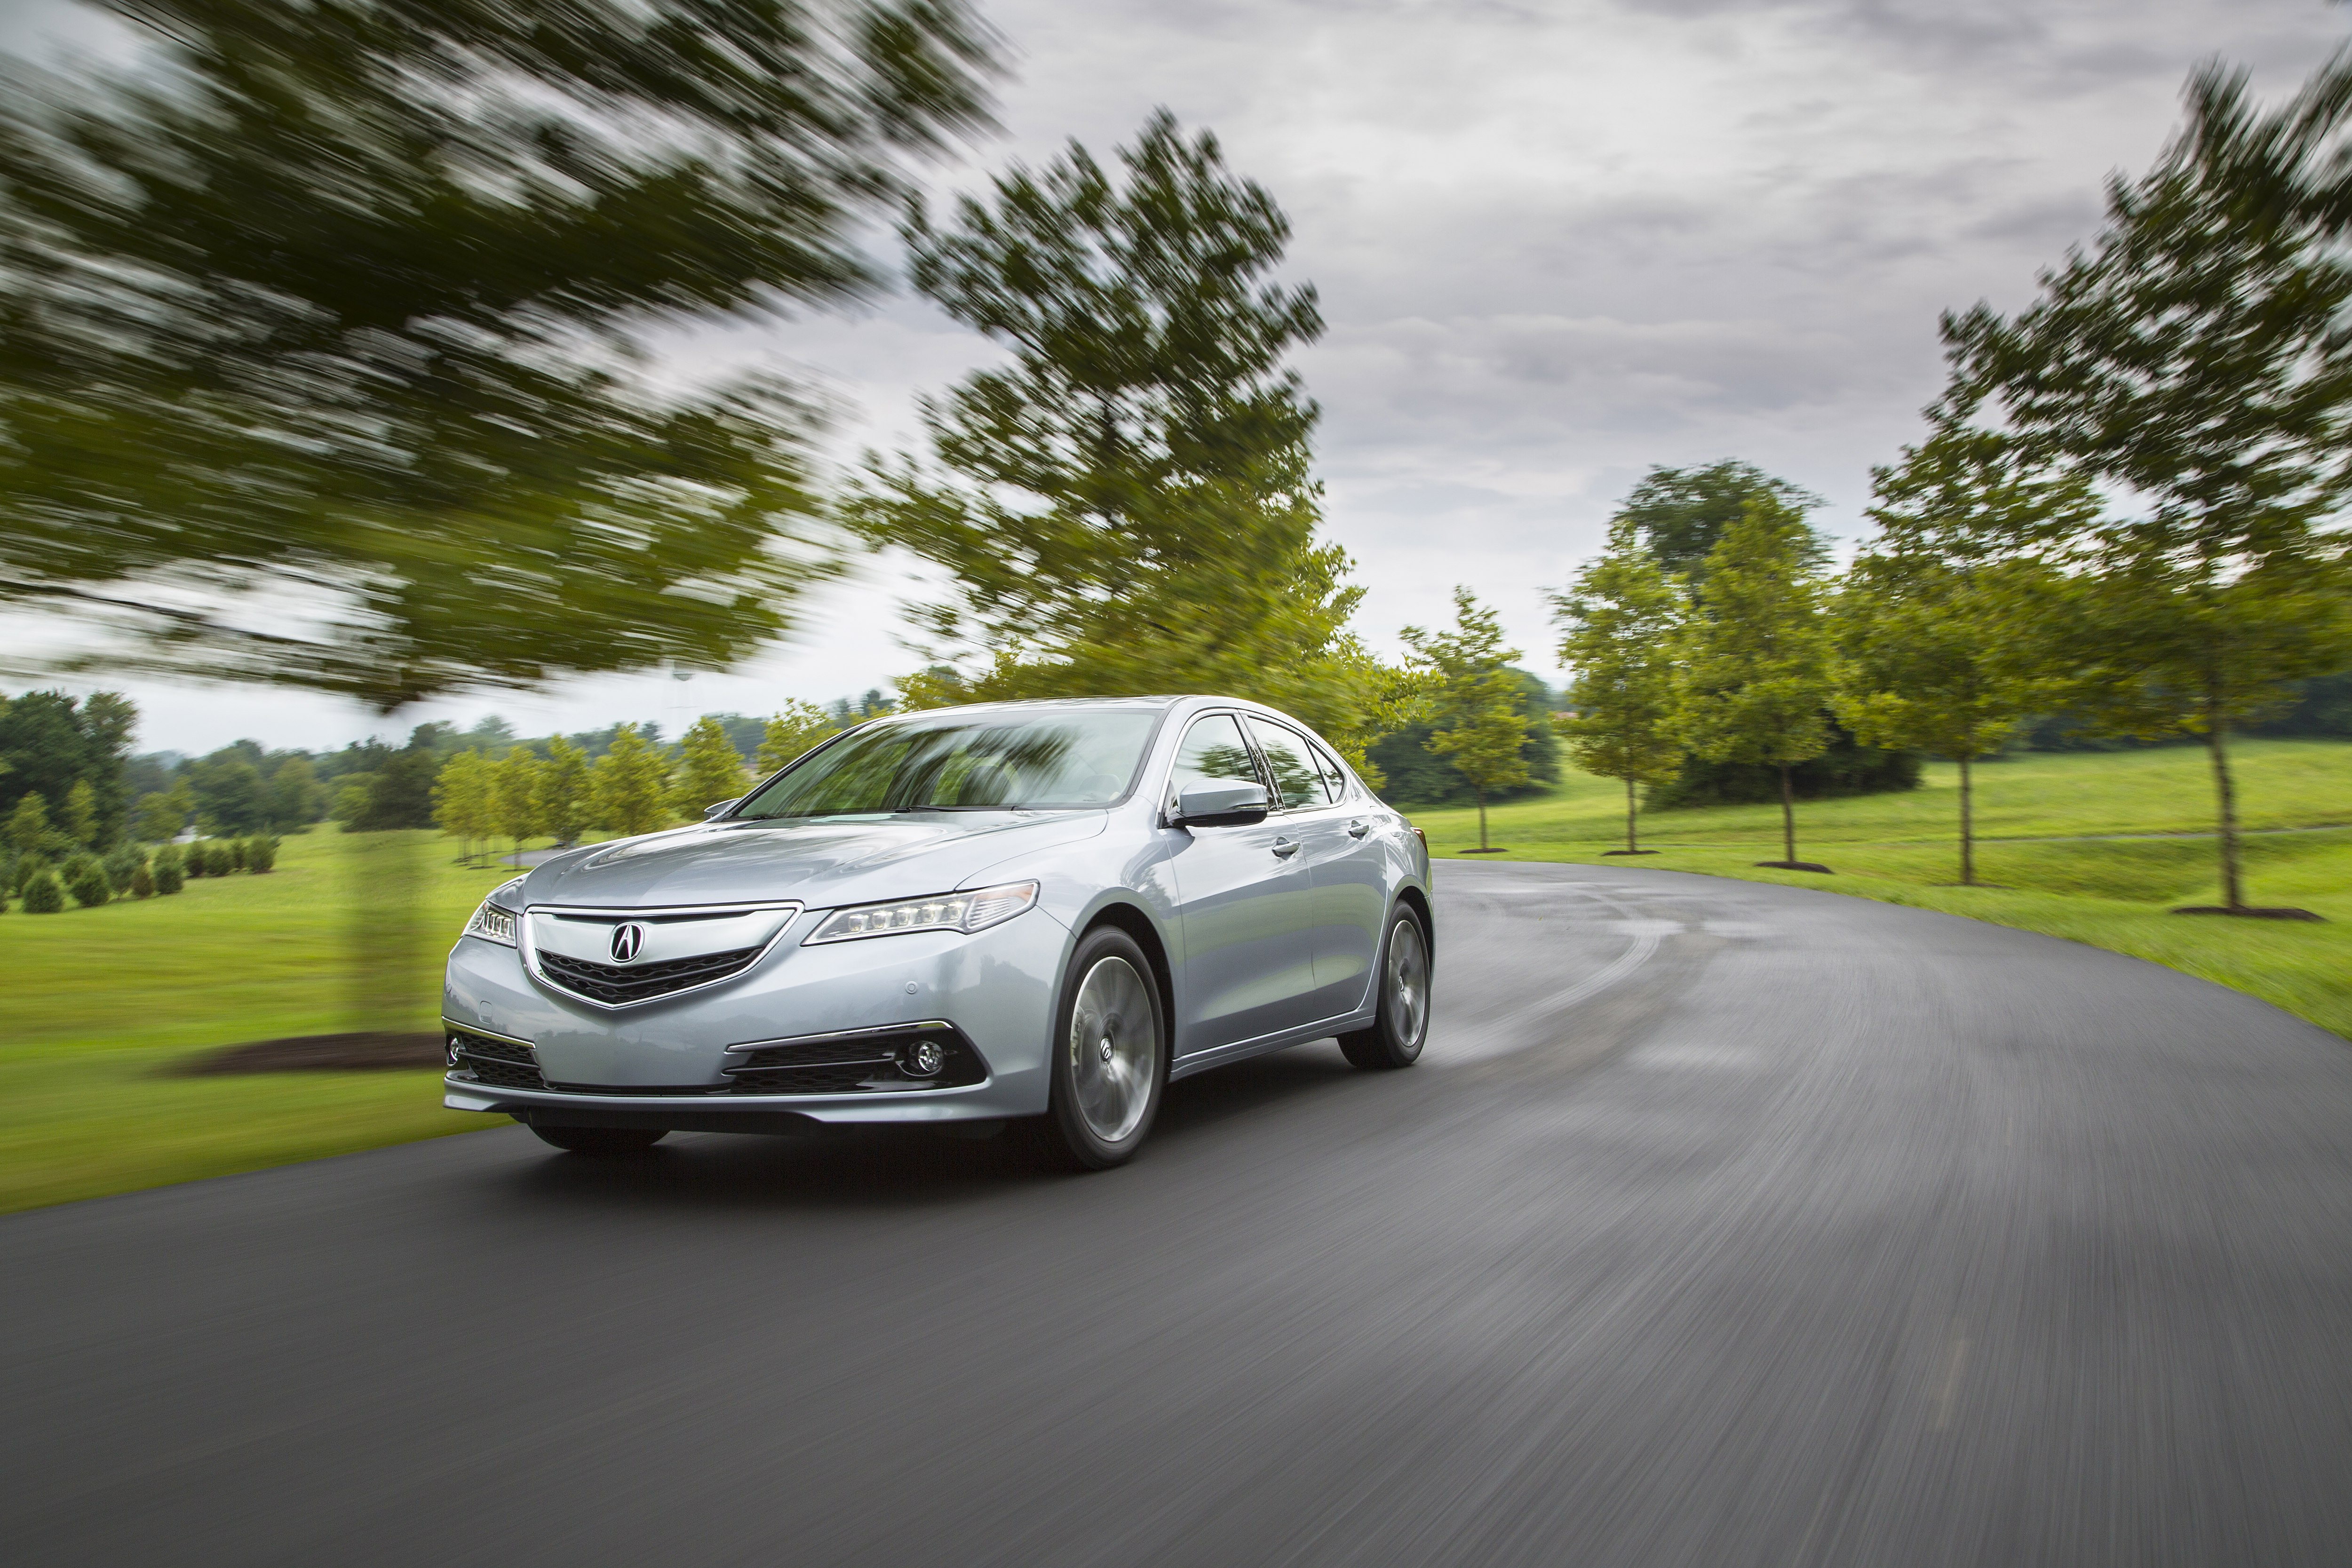 2017 Acura Tlx Achieves Highest Overall Vehicle Score From Nhtsa